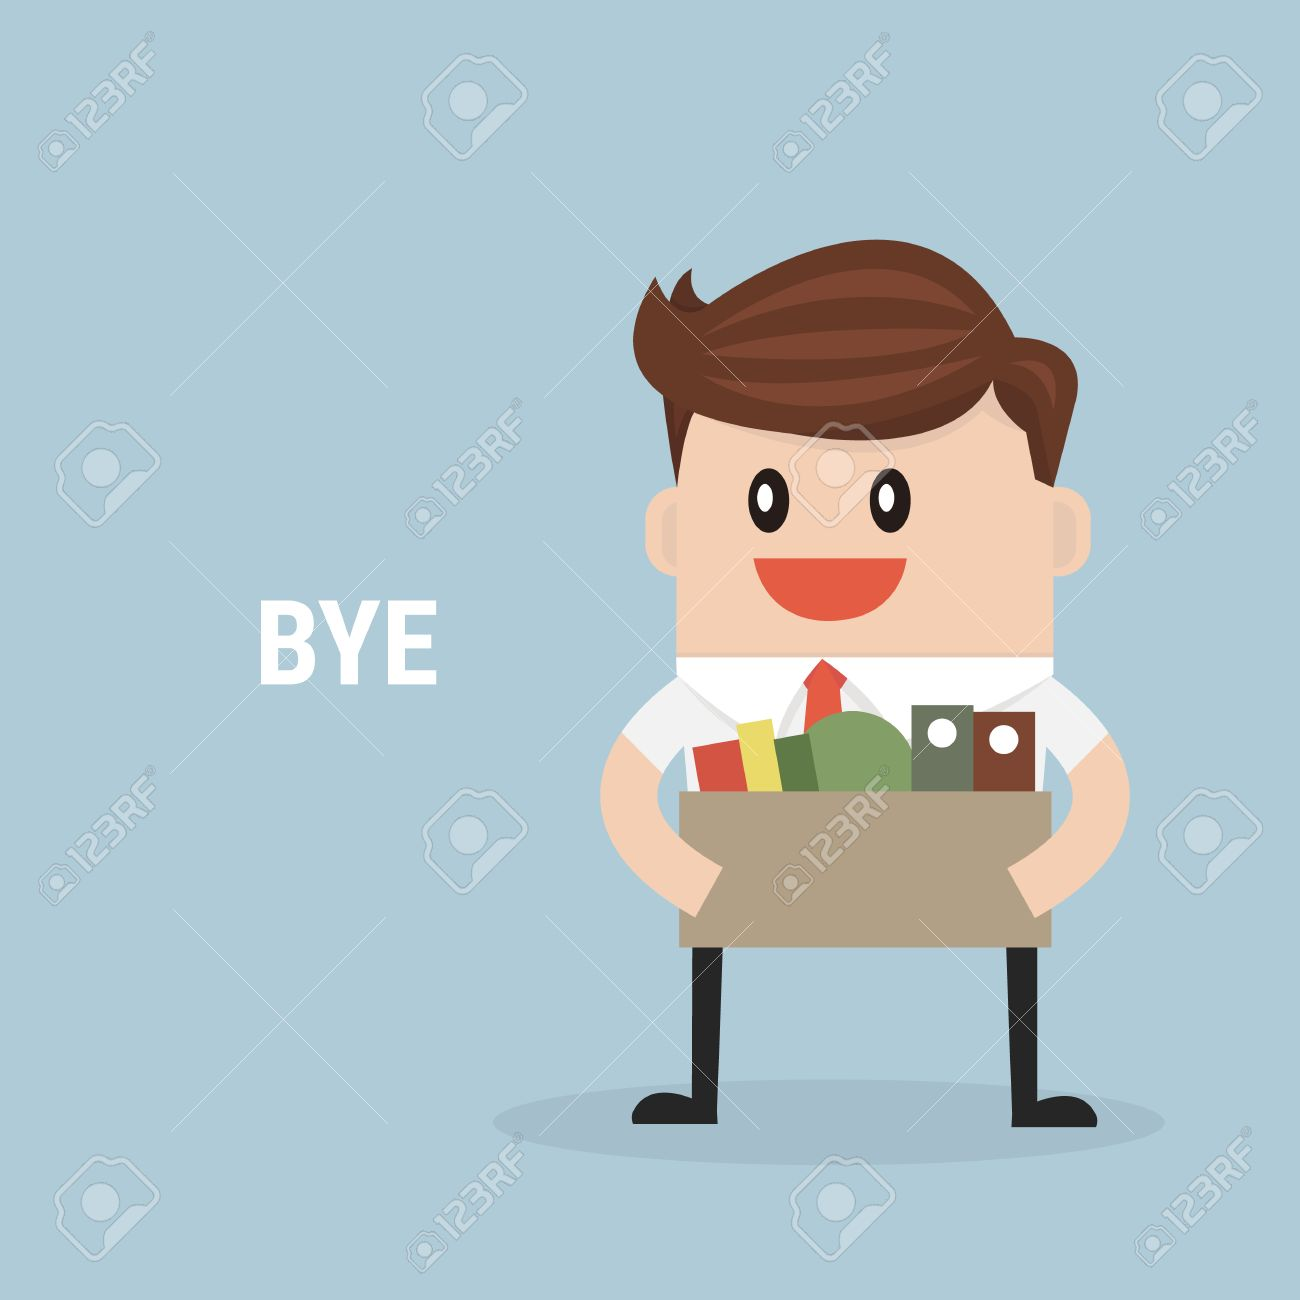 resign business images stock pictures royalty resign resign business businessman leaving job vector flat design